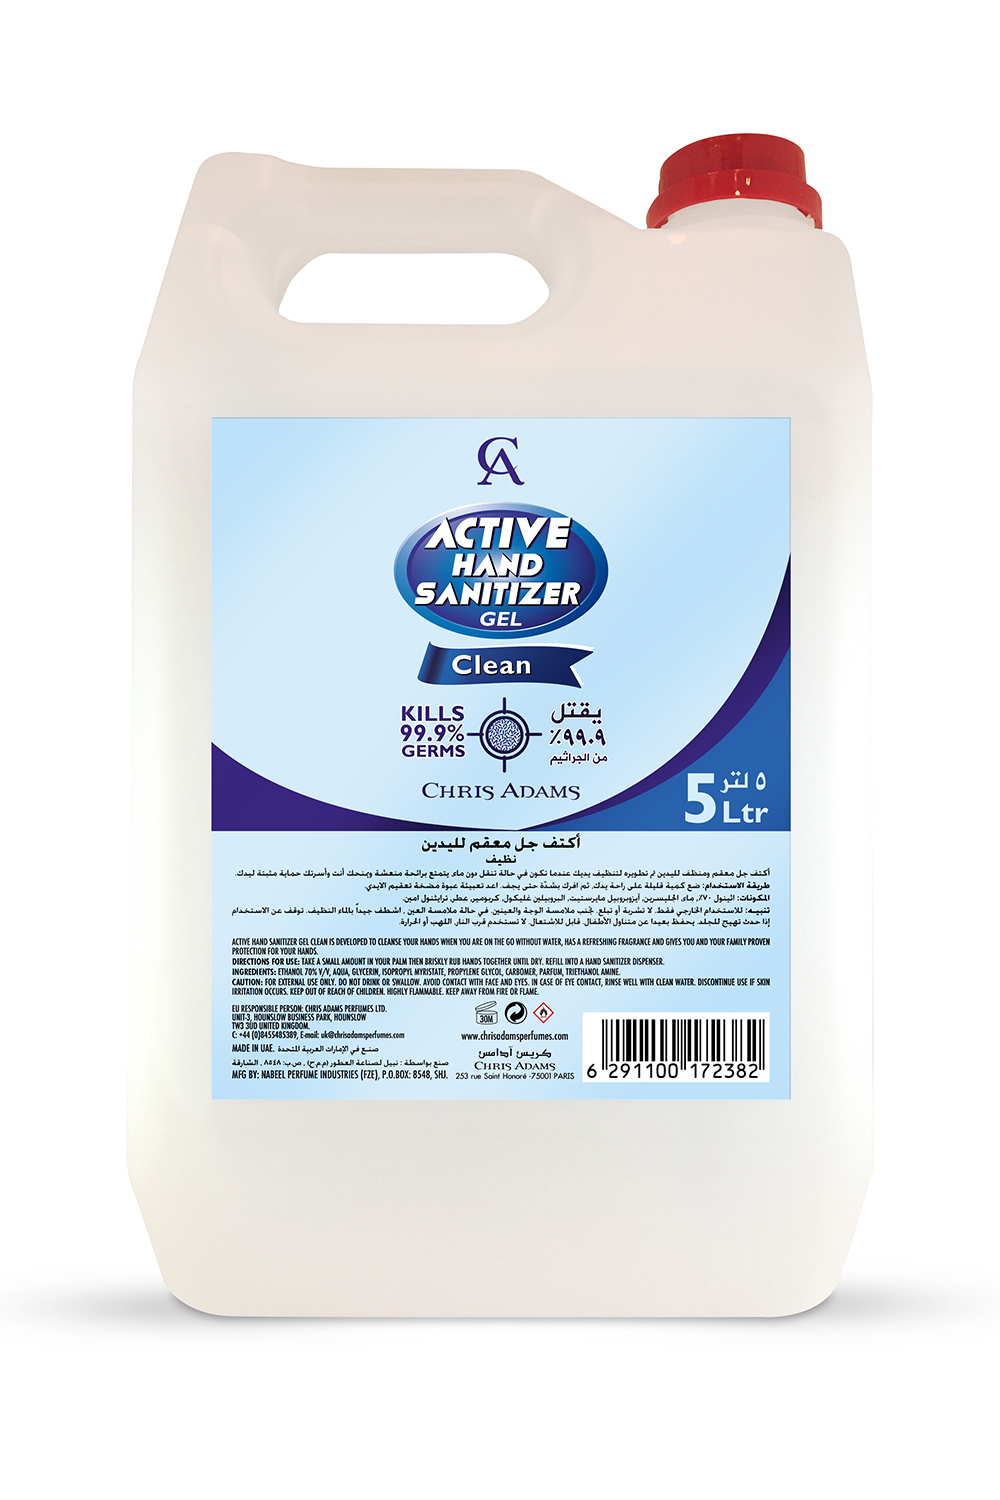 ACTIVE HAND SANITIZER 5 Ltr GEL